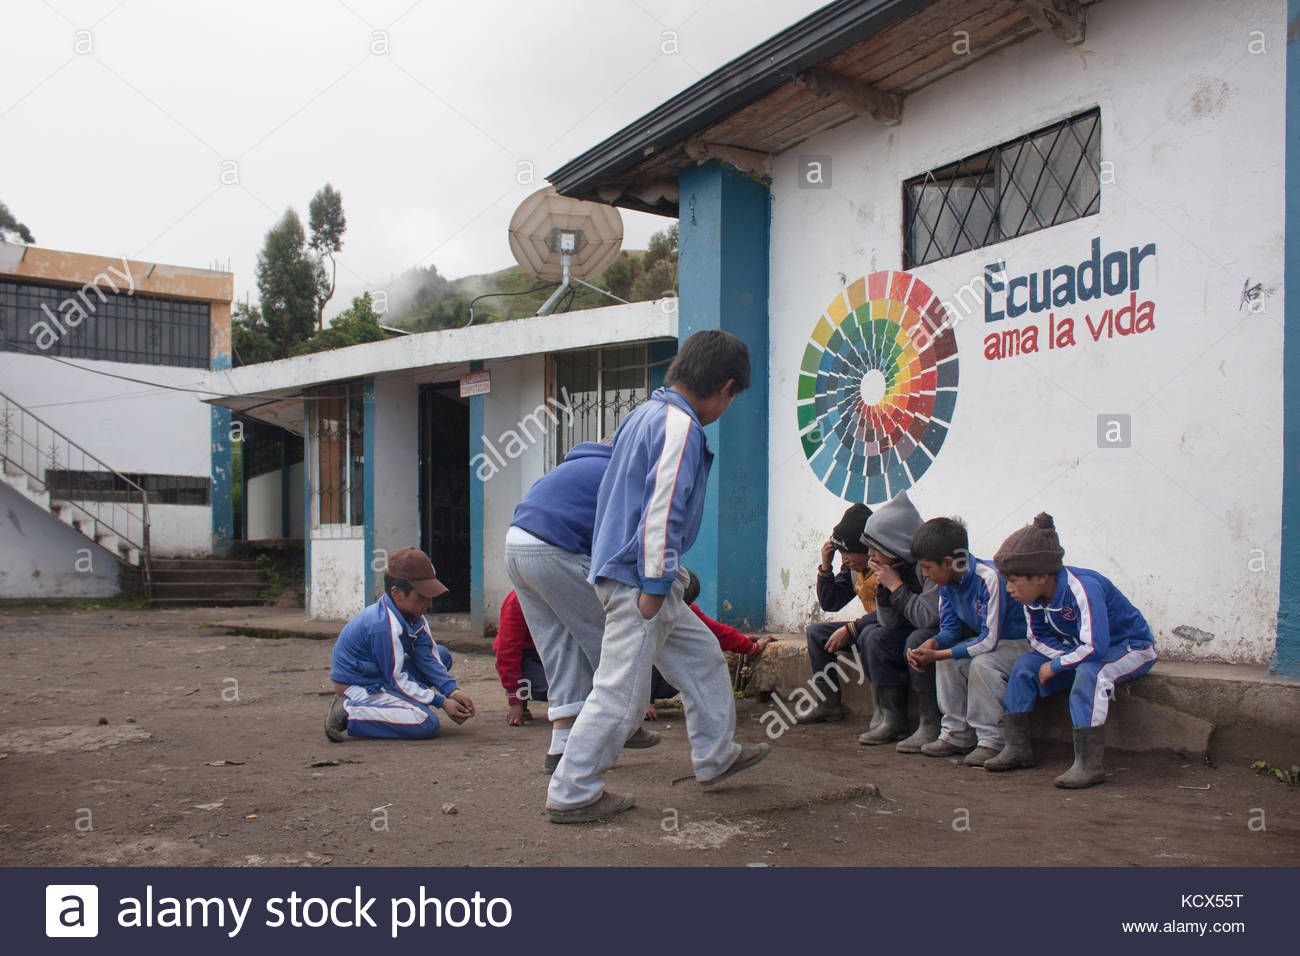 Ecuadorian students playing marbles in the dirt backyard of a school. Education during the Citizen's Revolution. - Stock Image